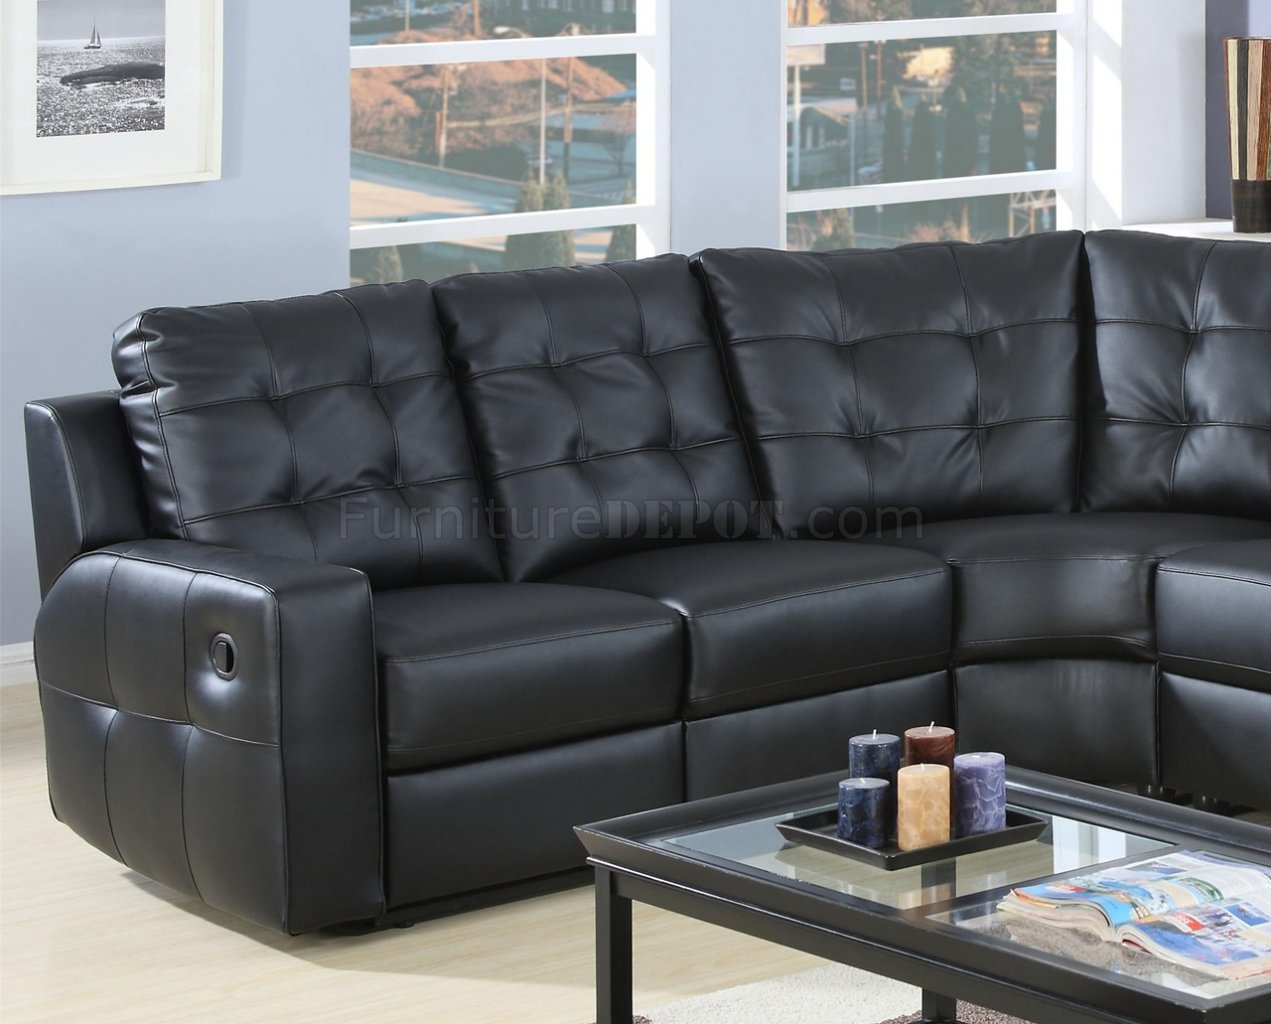 Modern Leather Double Reclining Sectional Sofa 600315 Black